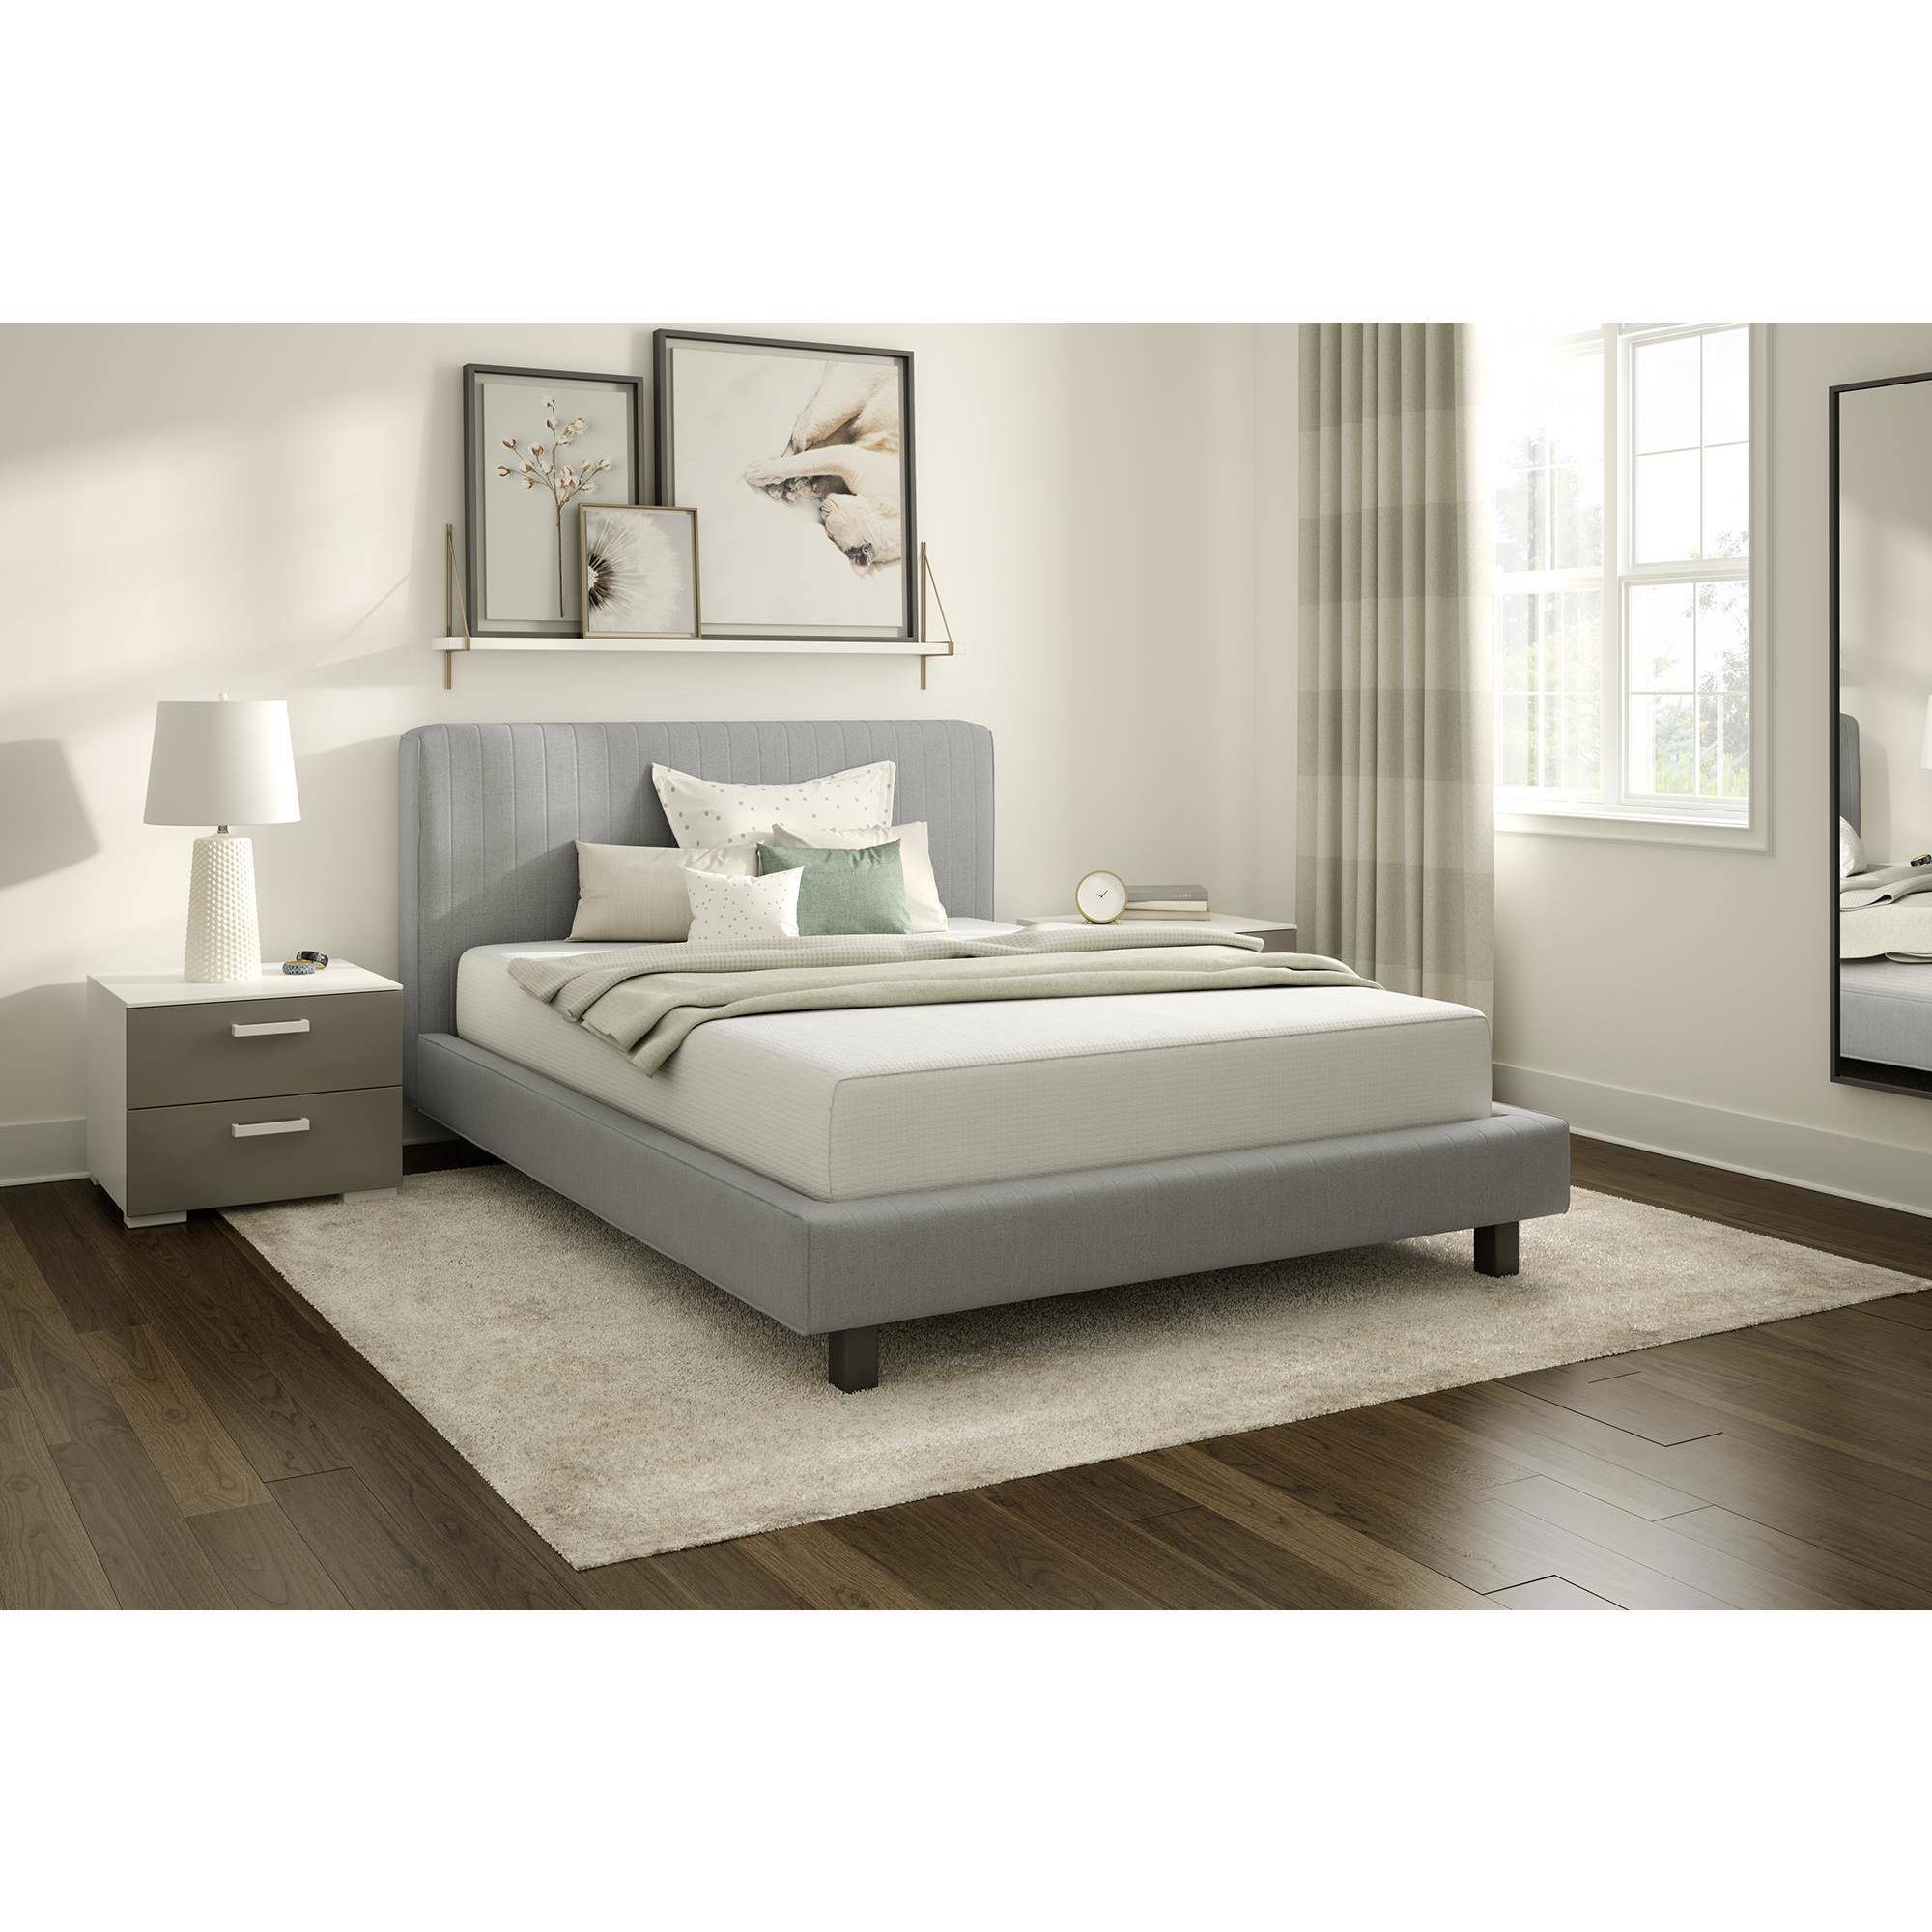 """Signature Sleep Gold CertiPUR-US Inspire 10"""" Memory Foam Mattress, Multiple Sizes by Dorel Home Products"""